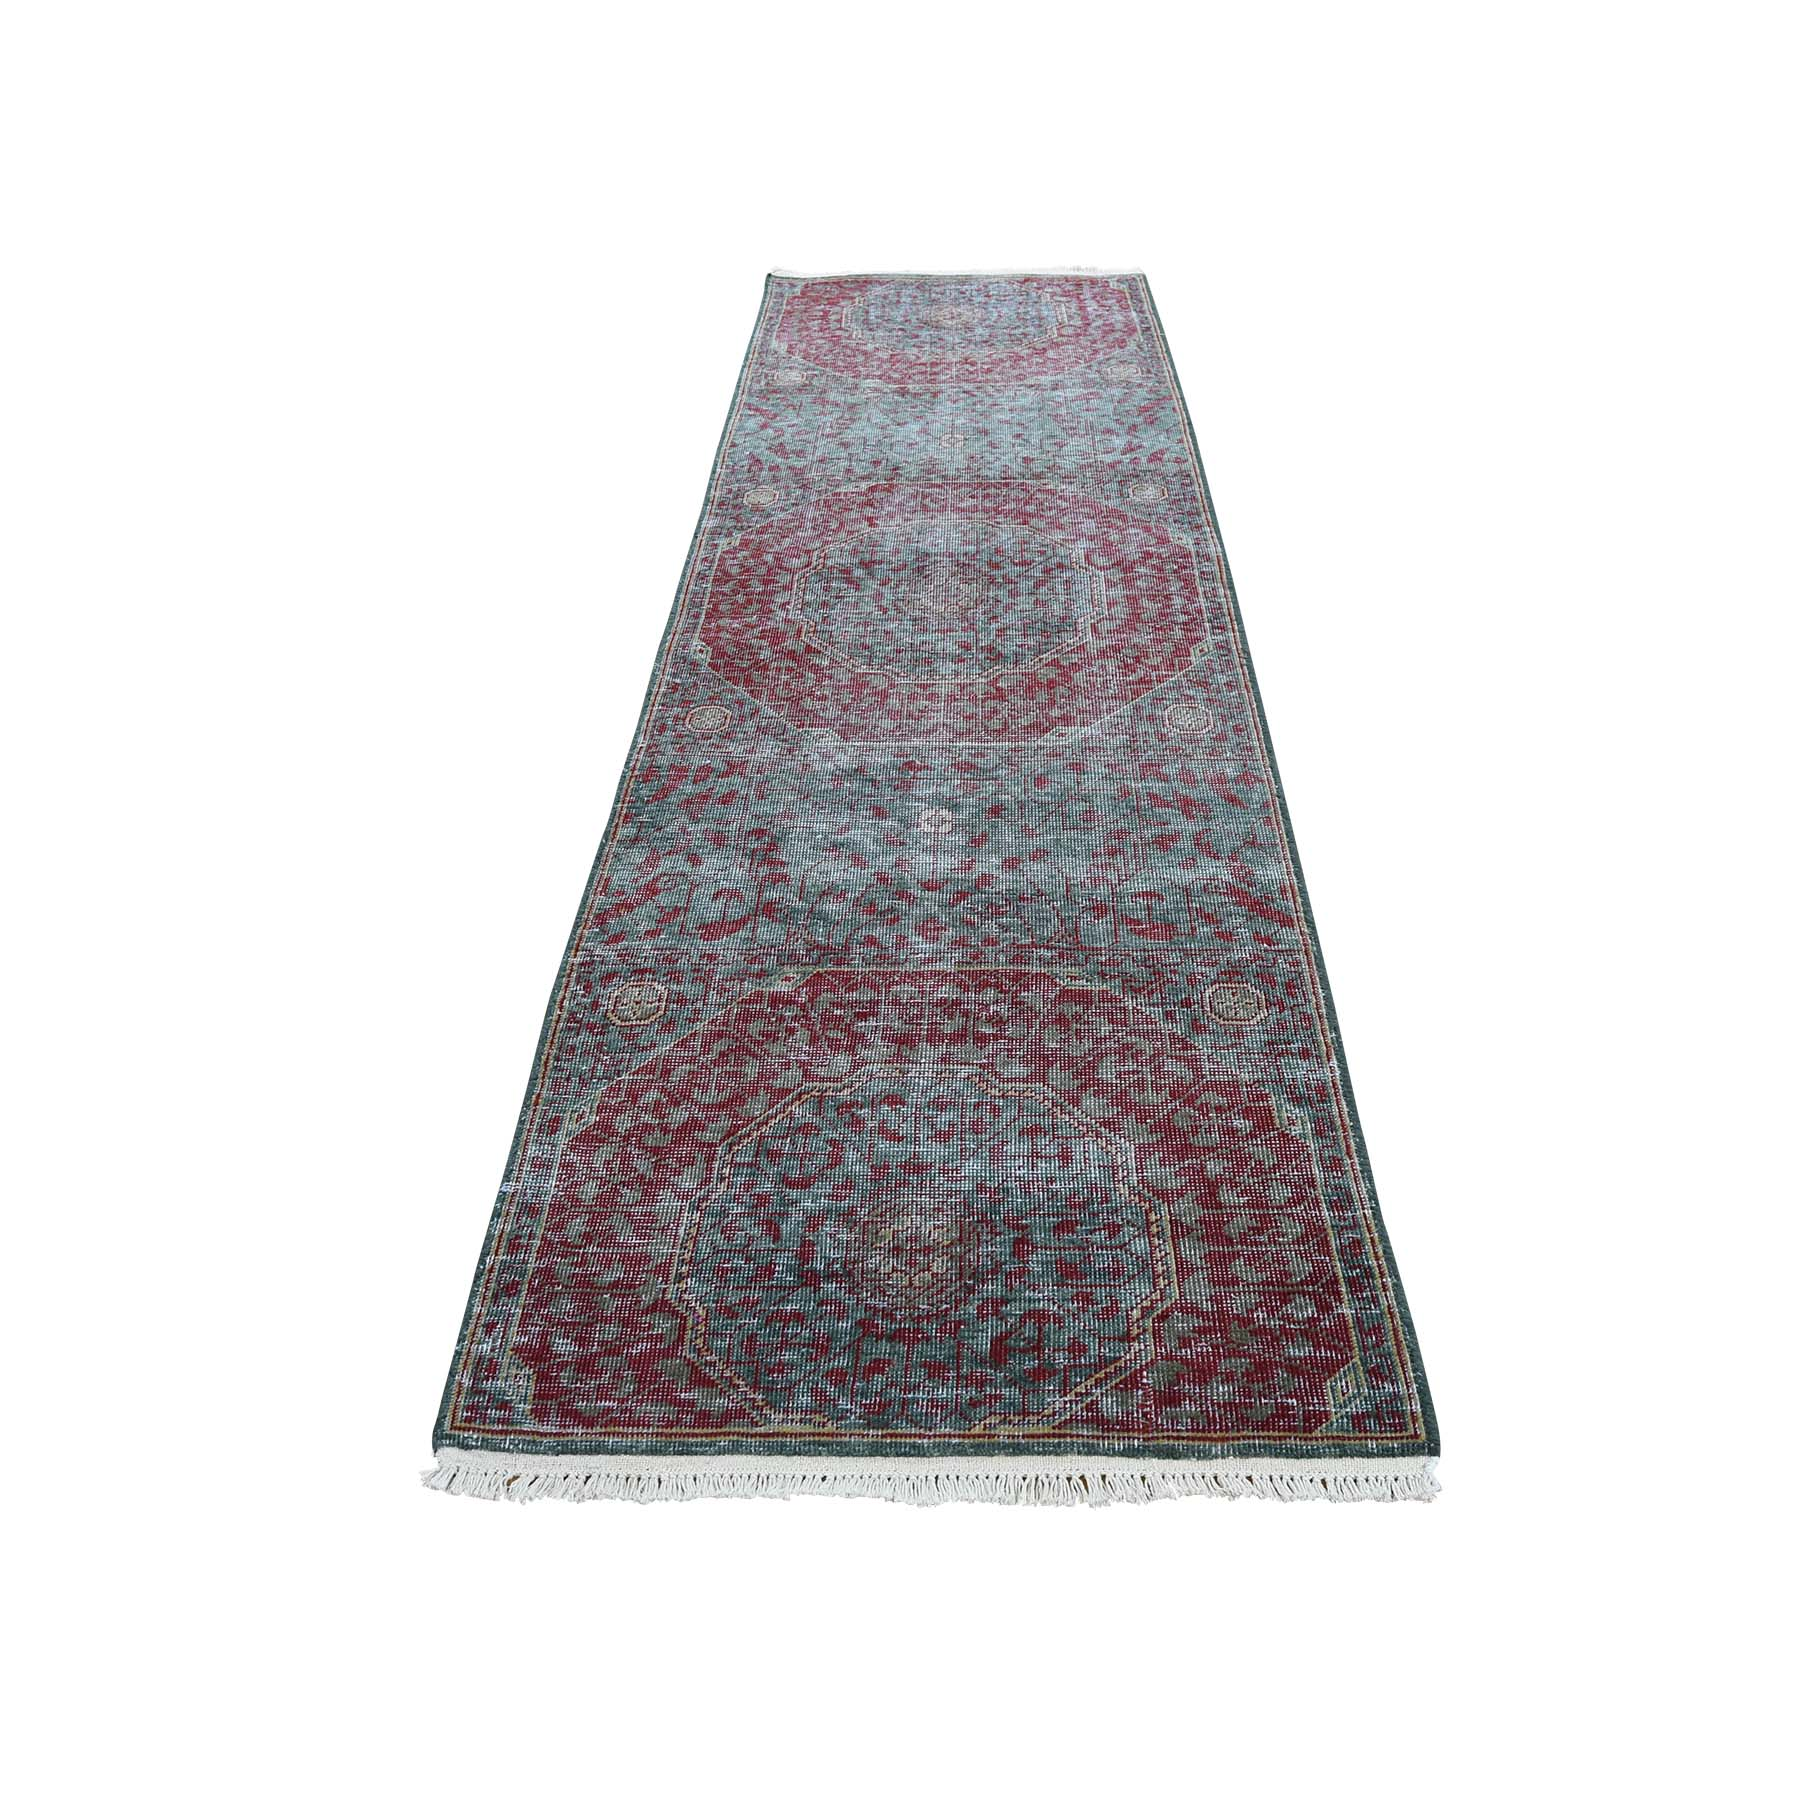 "2'6""X9'10"" Vintage Look Mamluk Zero Pile Shaved Low Worn Wool Runner Rug moadadaa"